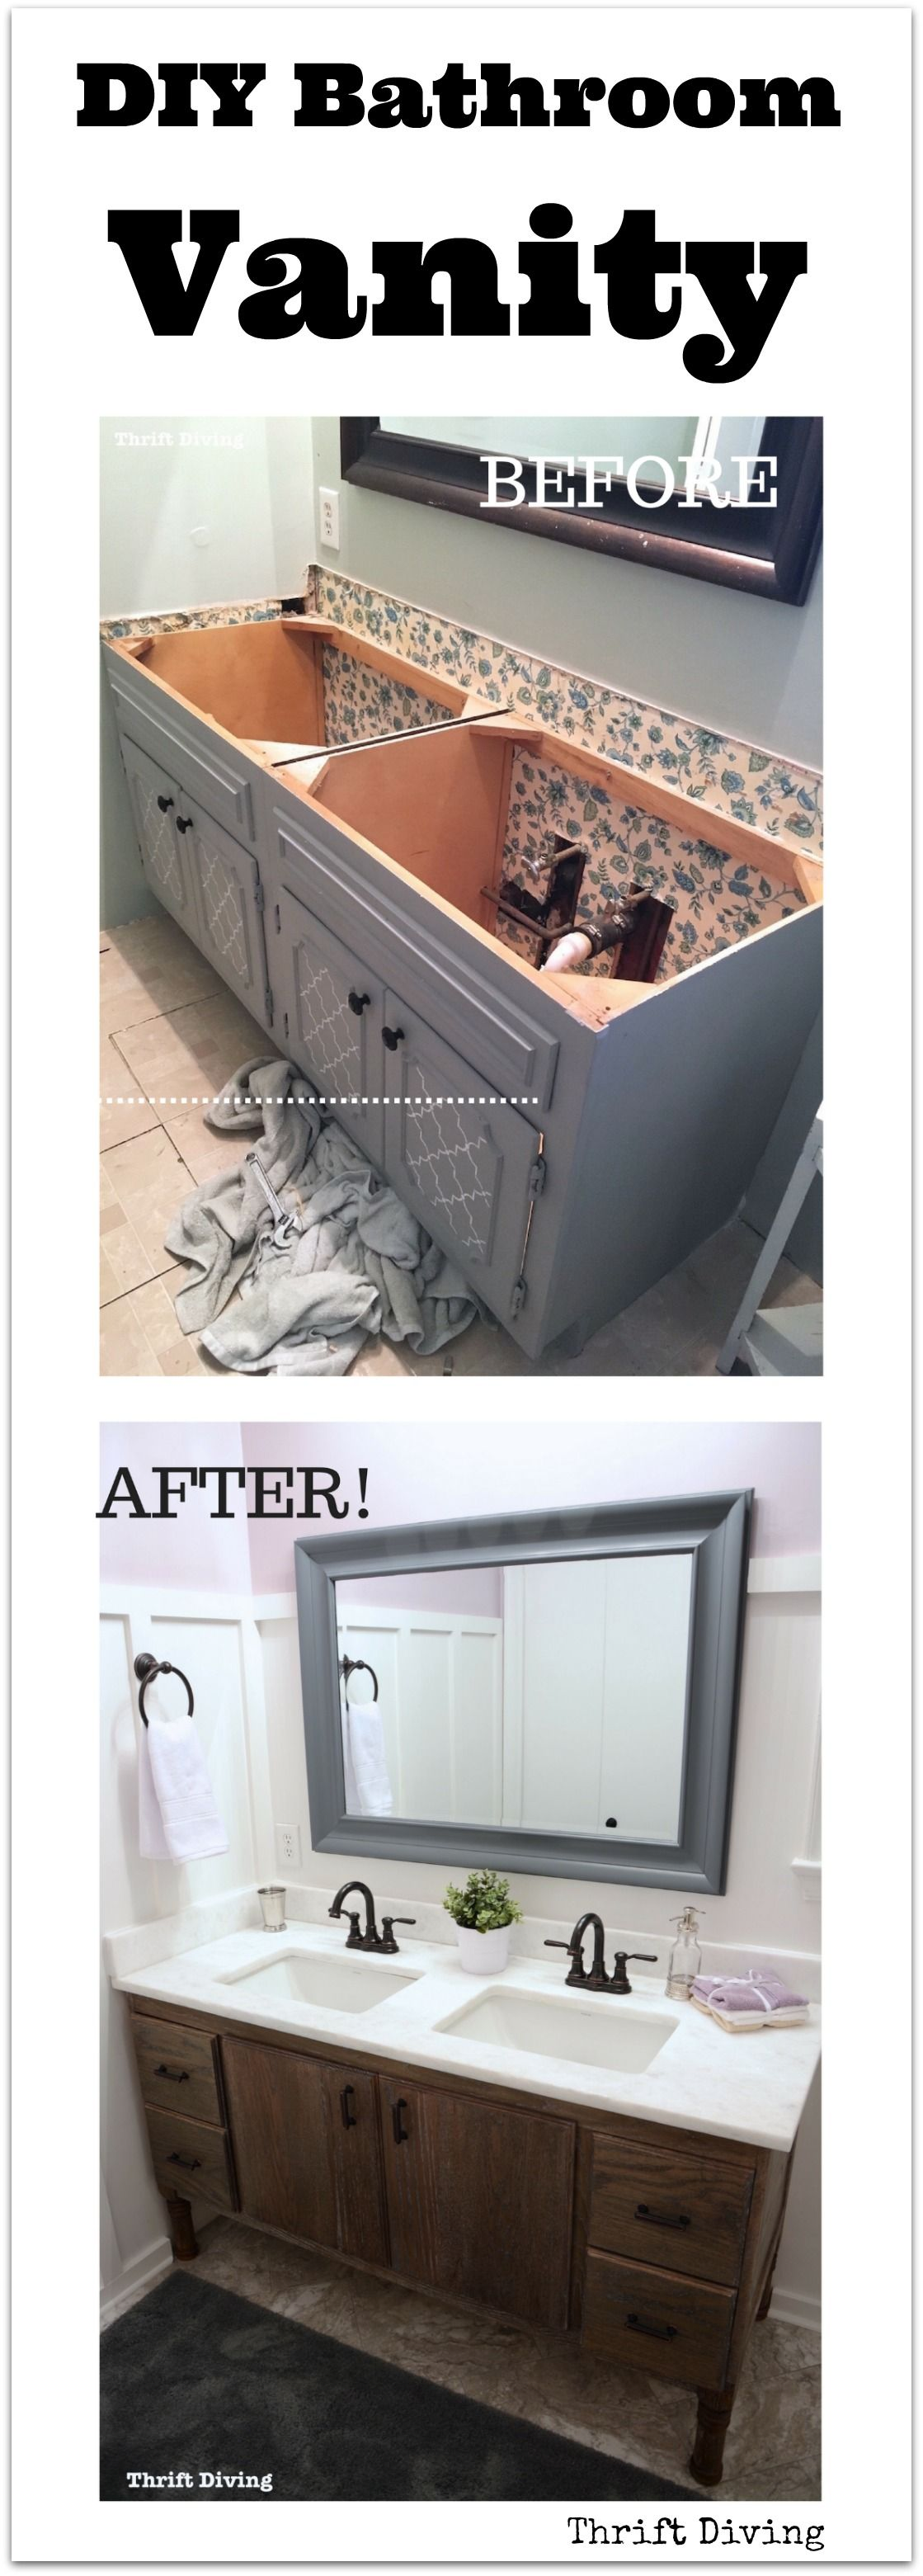 before after how to build a diy bathroom vanity from scratch rh pinterest com